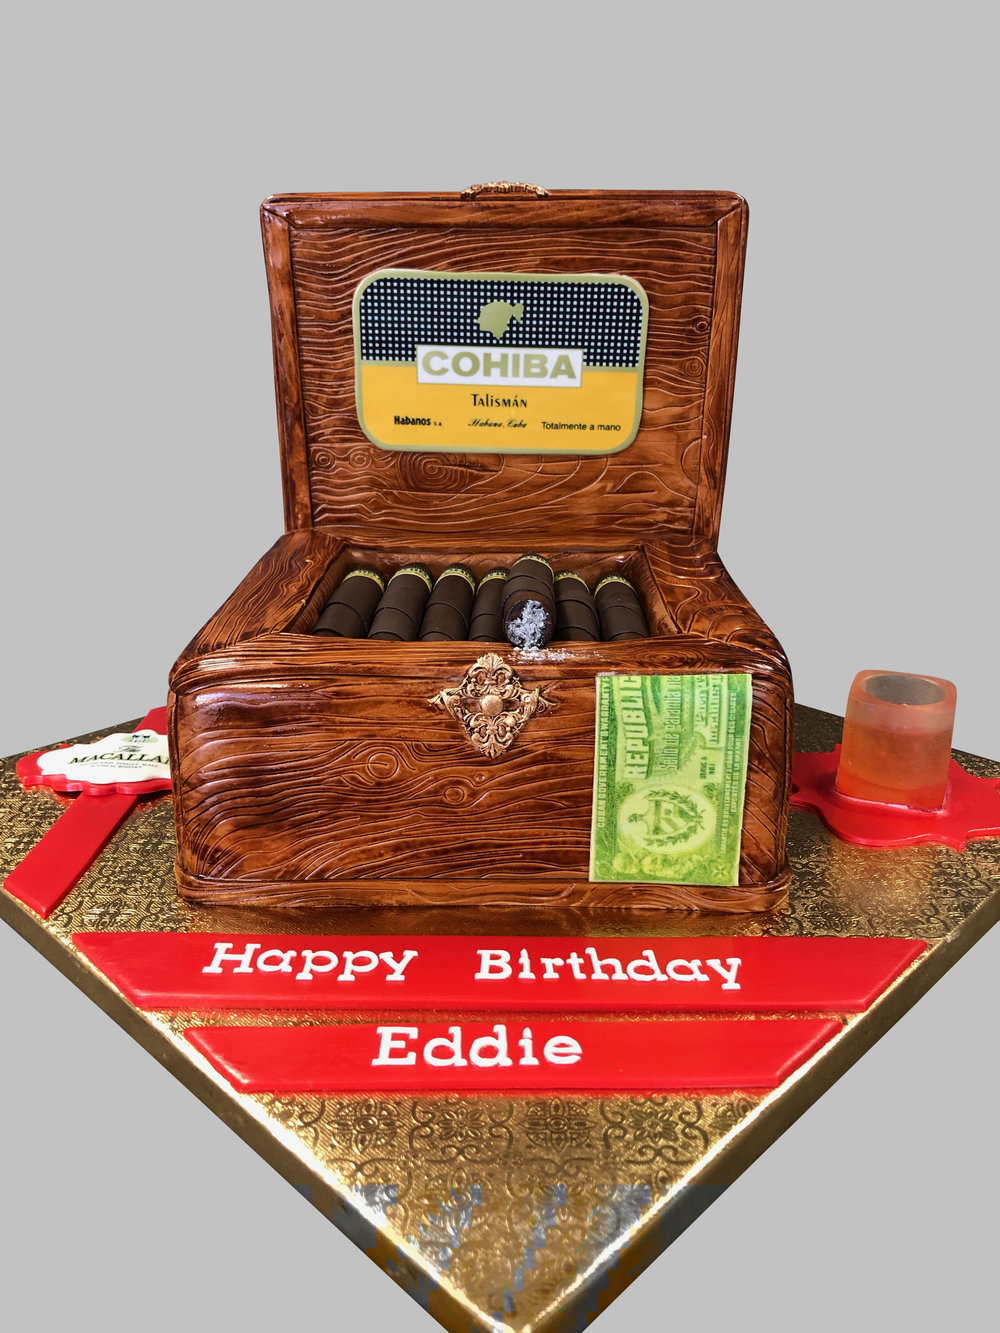 Cigar Box Birthday Cake New Jersey